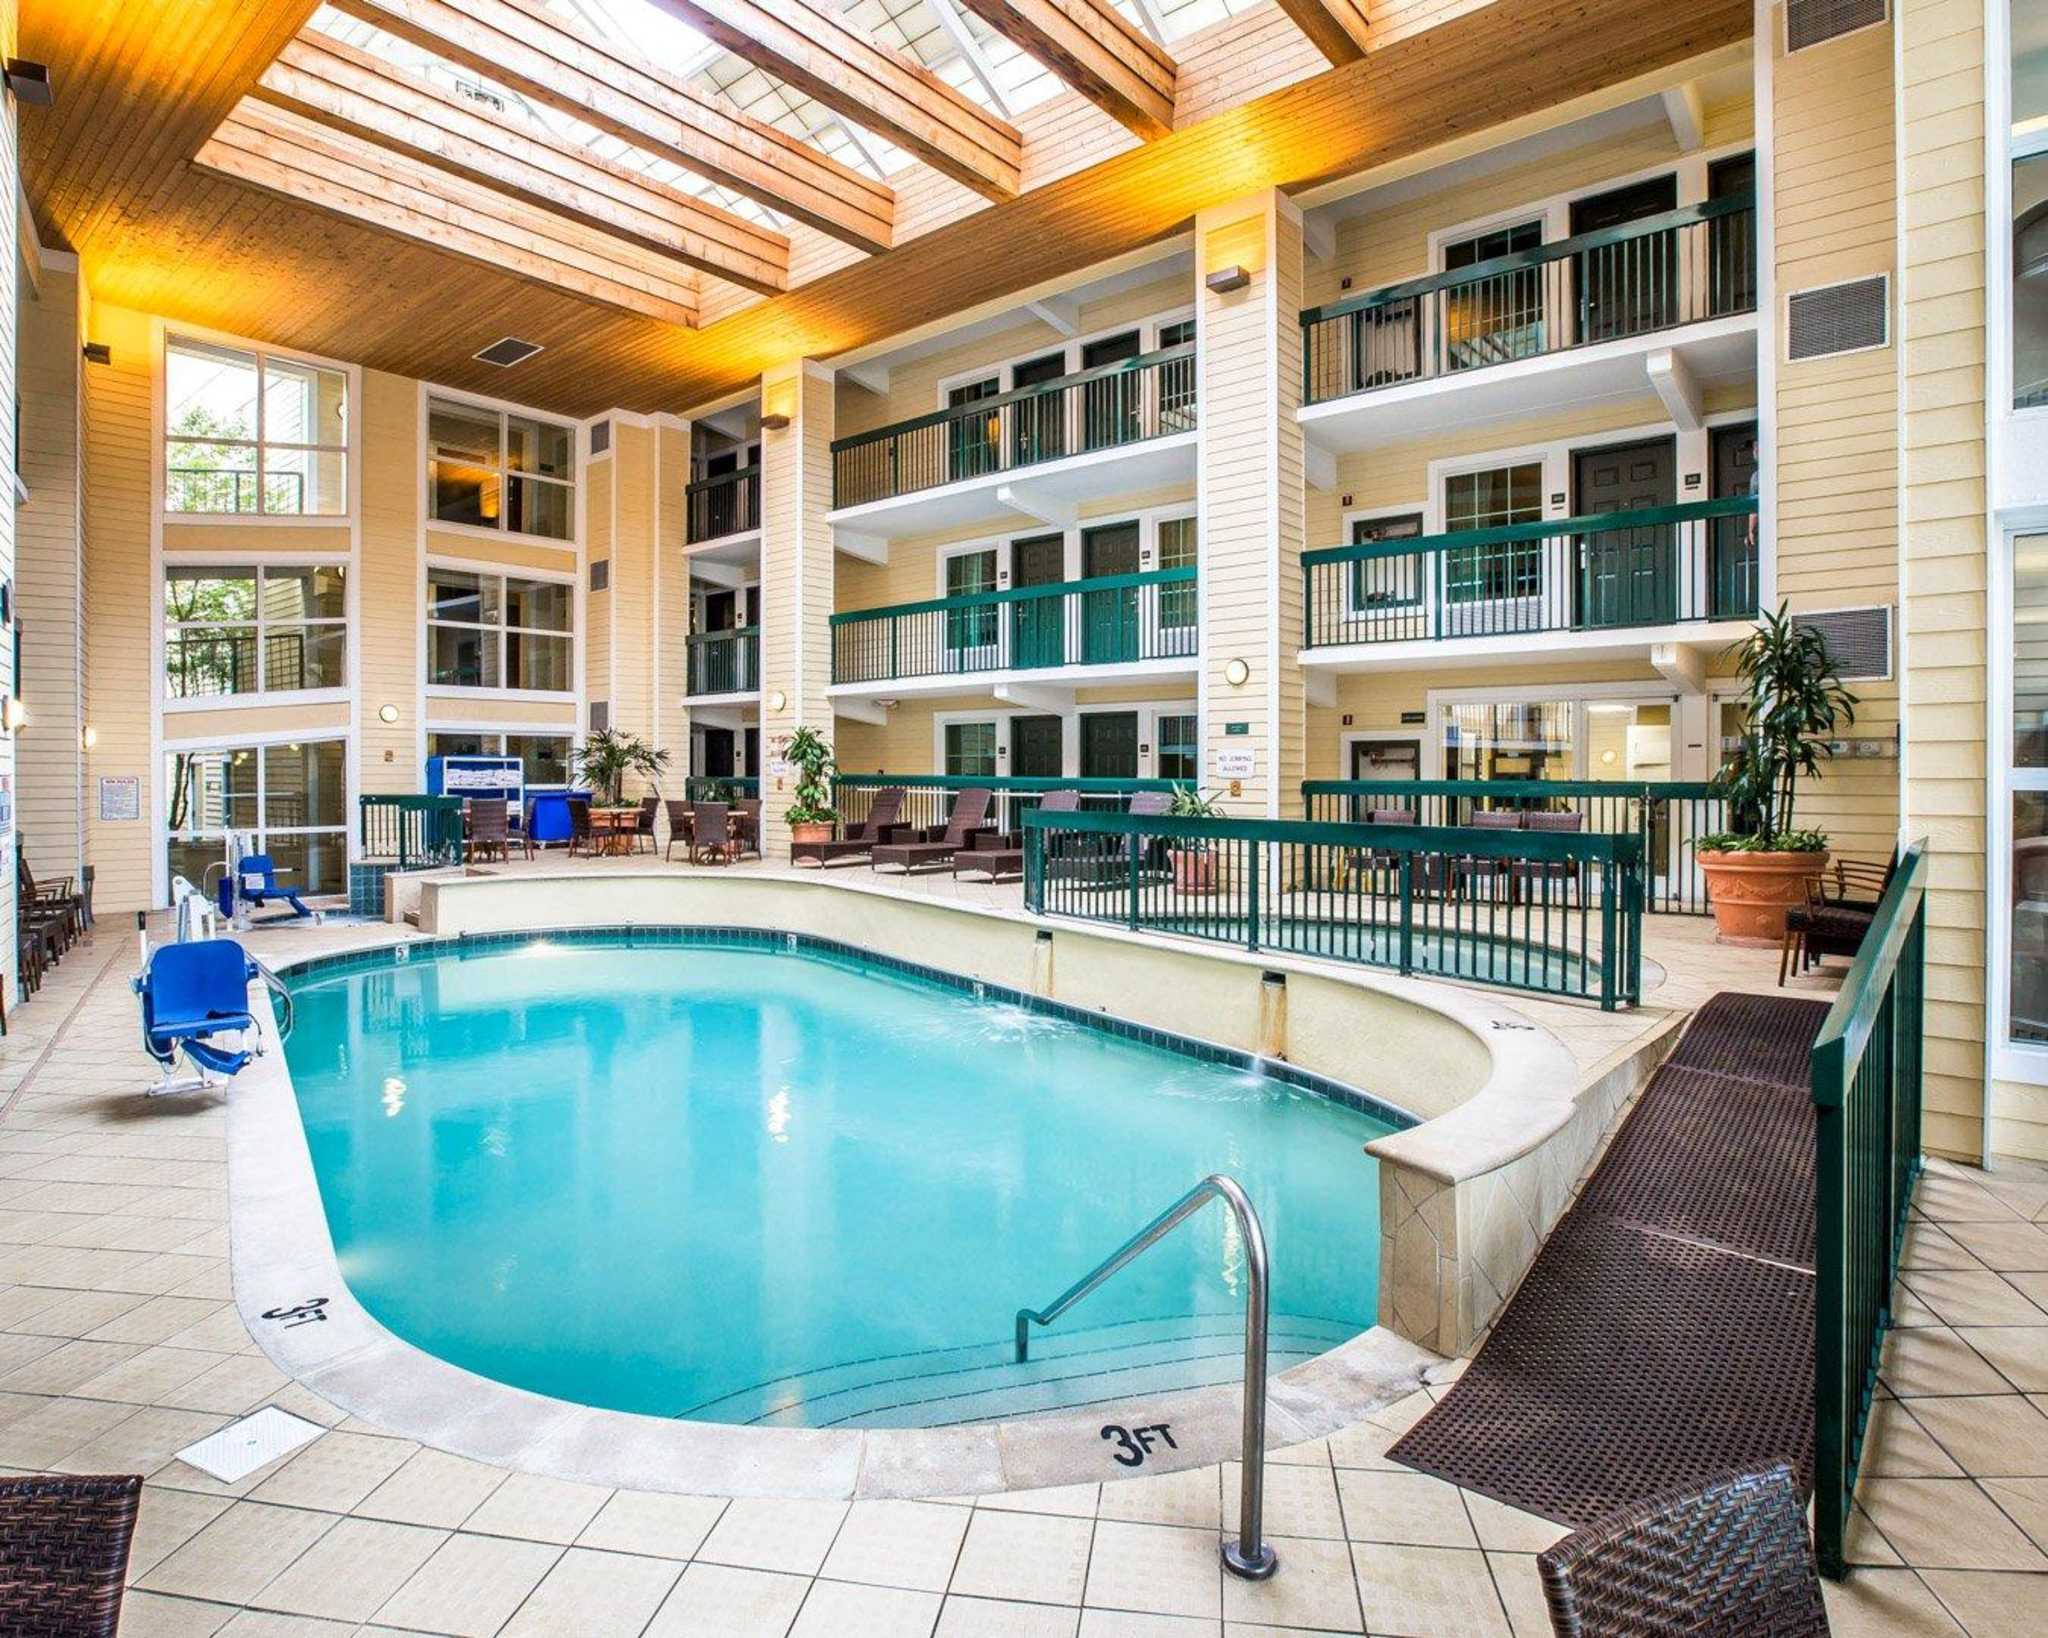 Econo Lodge Riverside Pigeon Forge Tennessee Tn Localdatabase Com